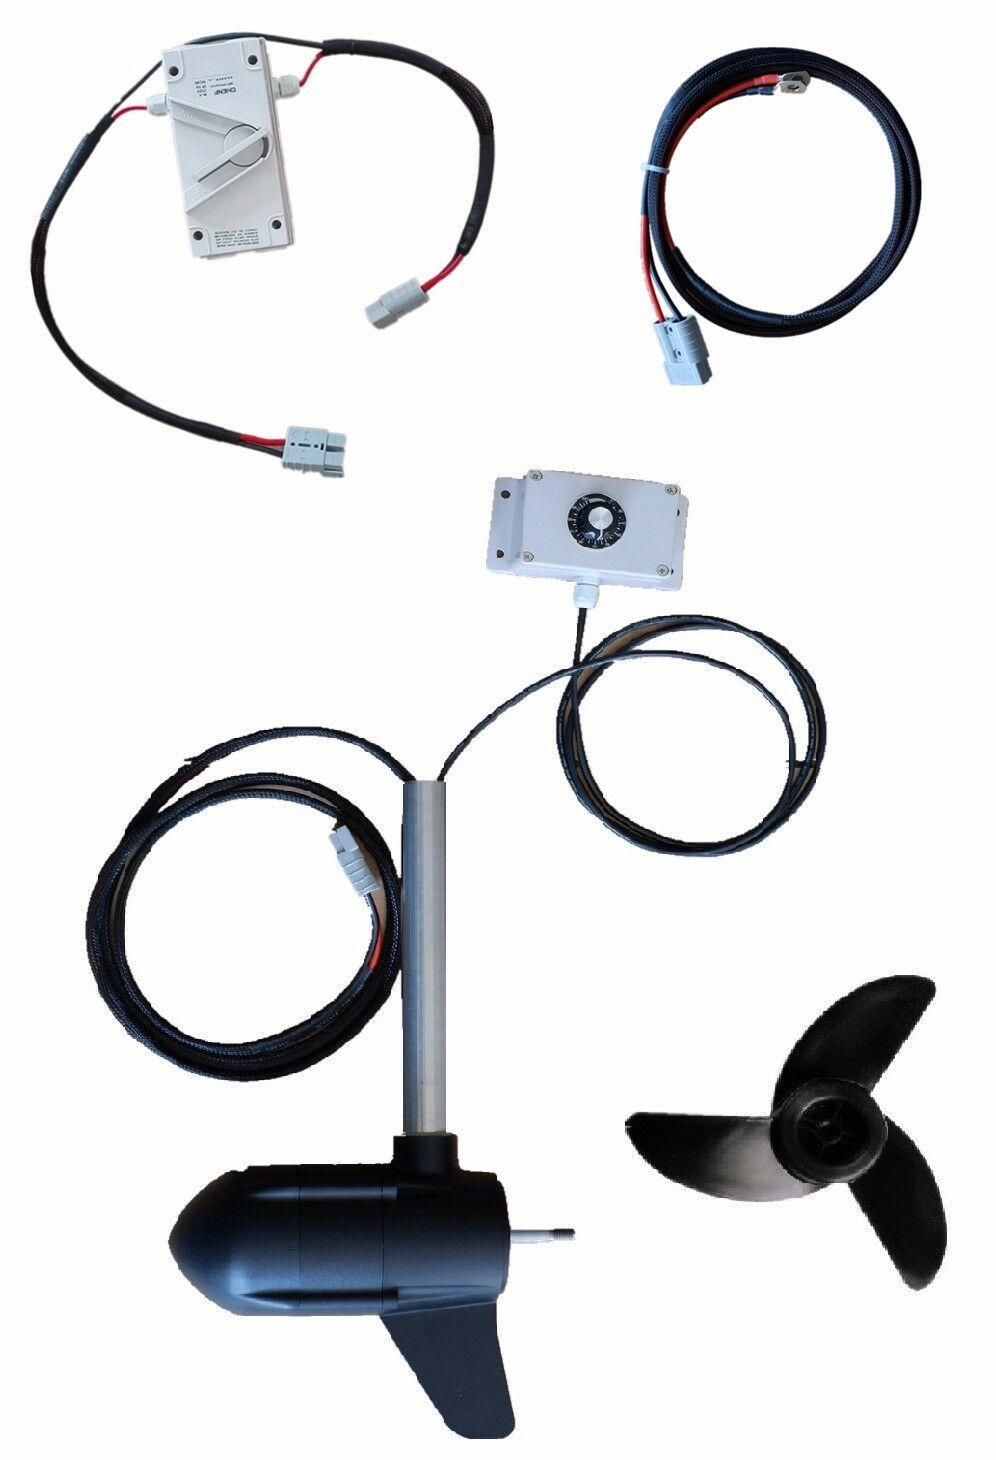 S400 48v 180lb Electric Boat Trolling Motor With Speed Controller 3 Prong Plug Wiring Diagram Norton Secured Powered By Verisign